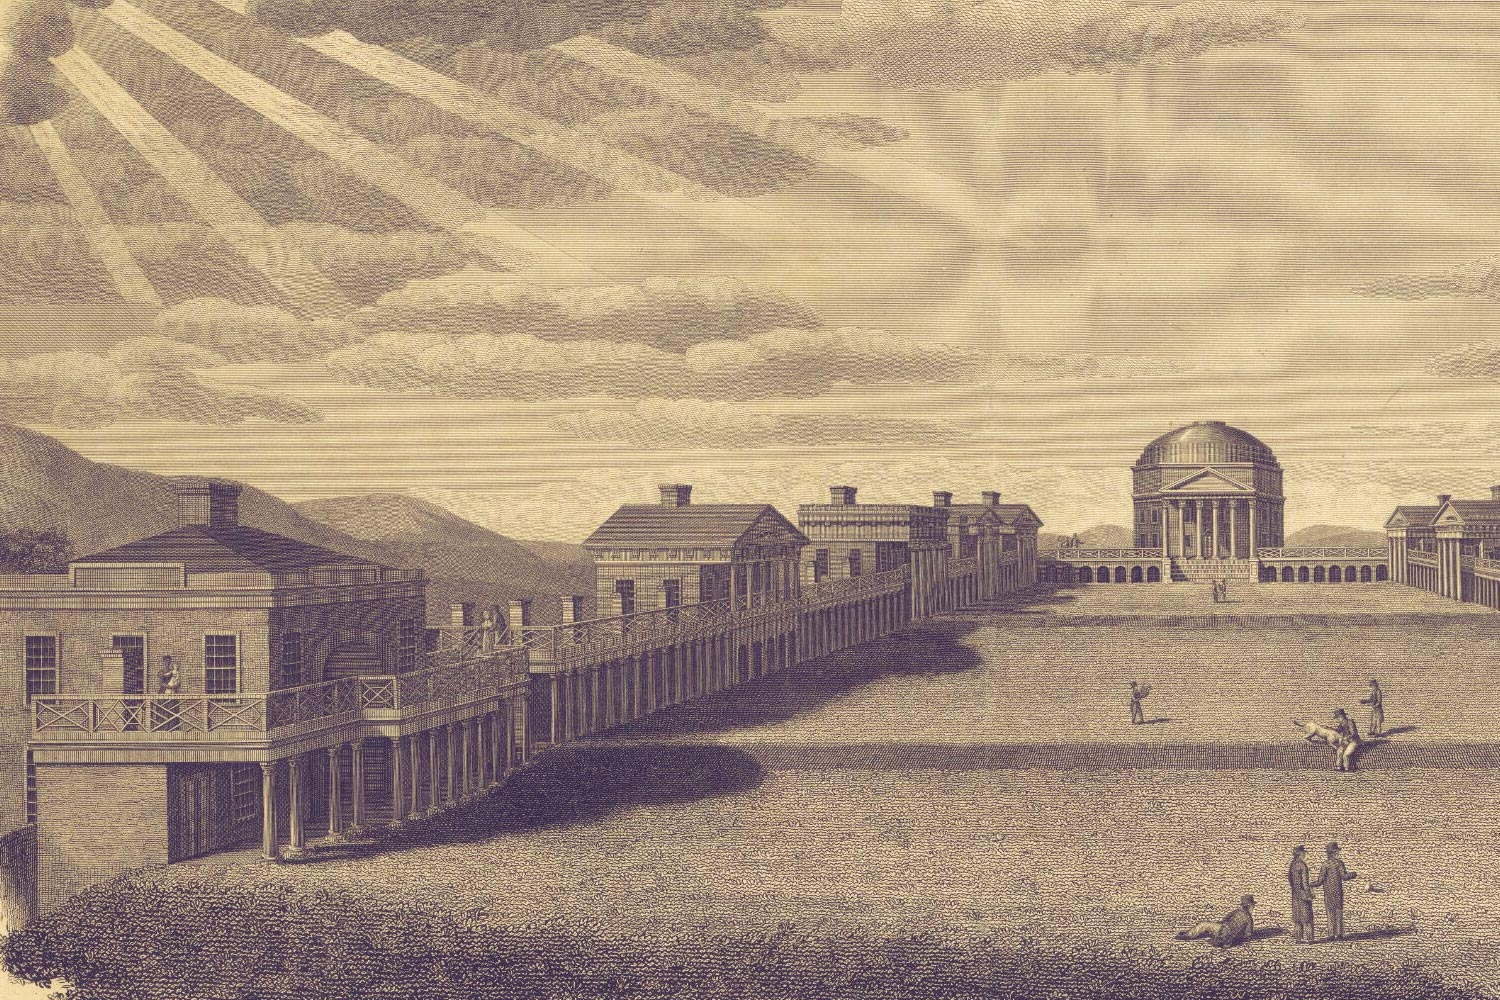 Detail from engraving by B. Tanner, 1827.